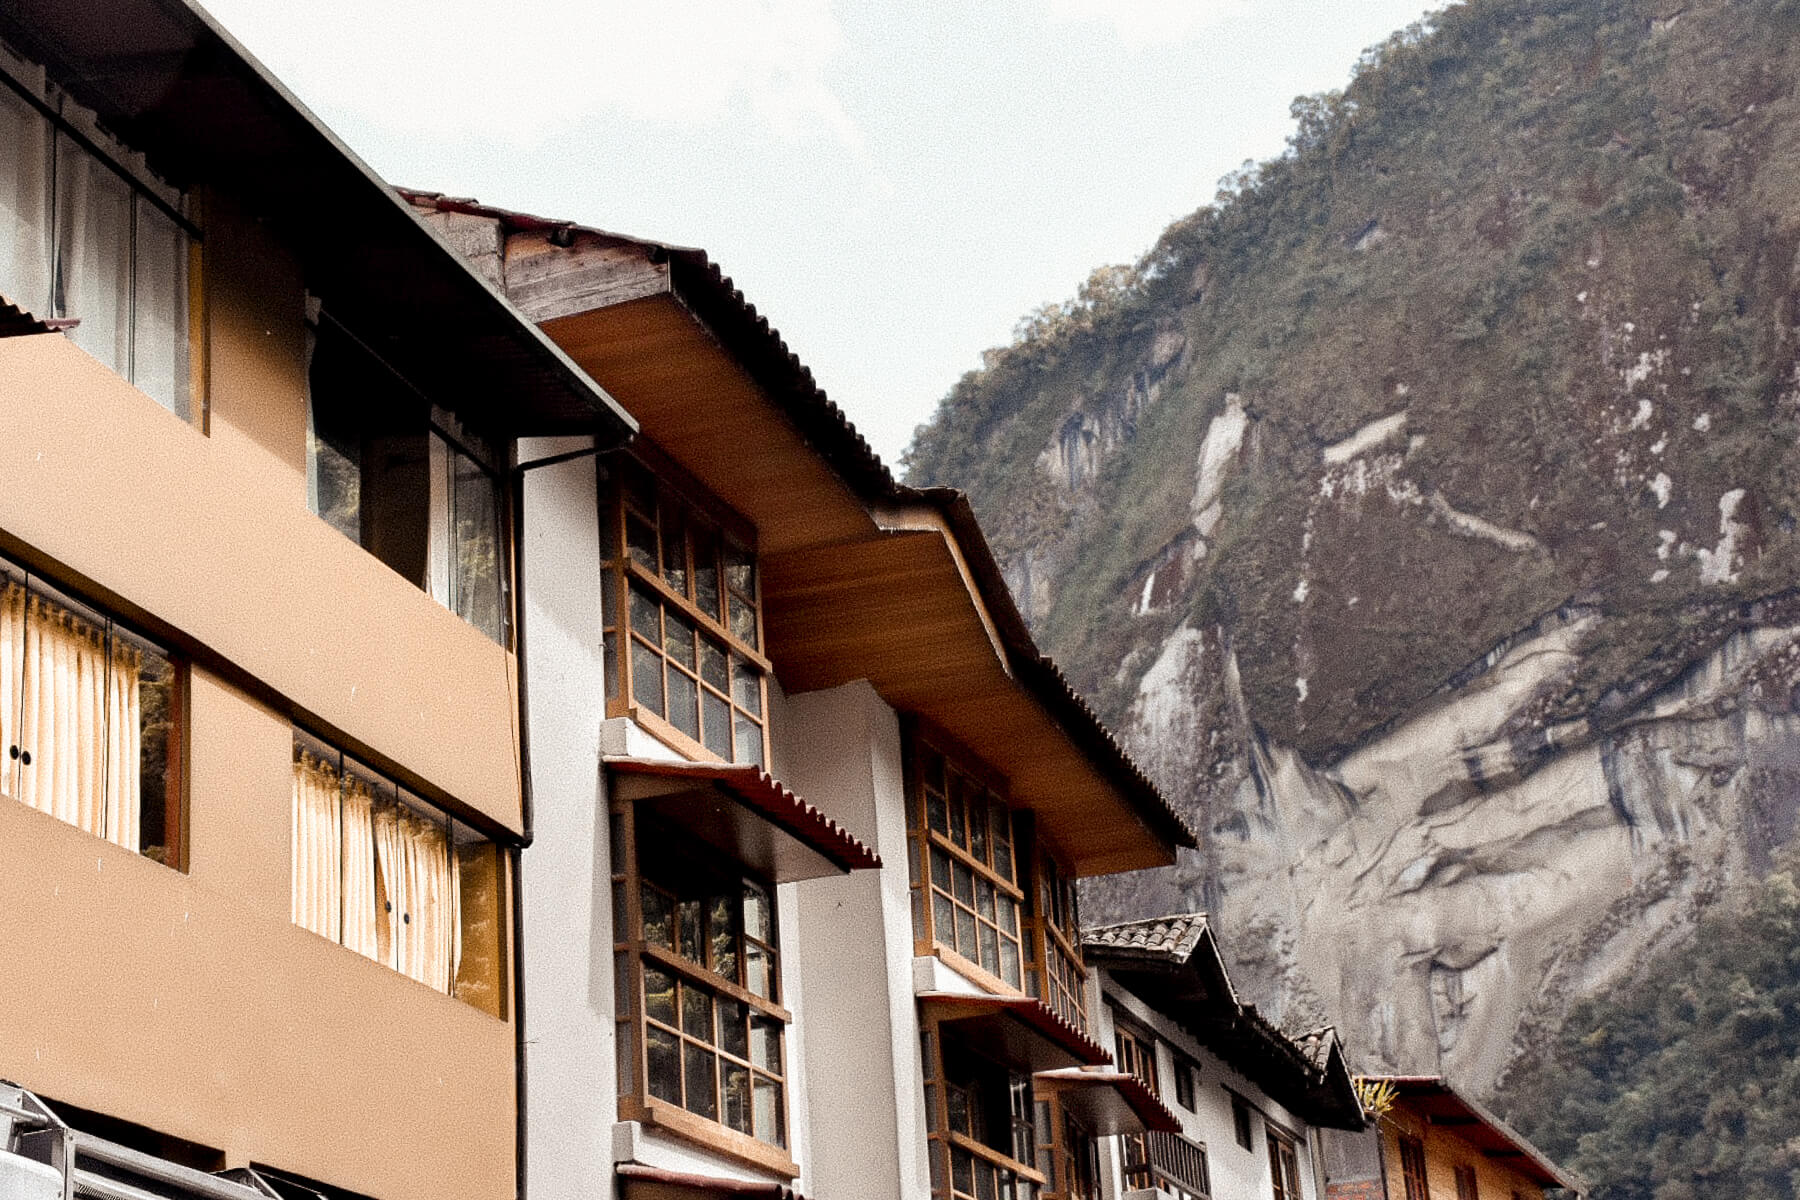 Beautiful Peruvian buildings with a cliff face behind them